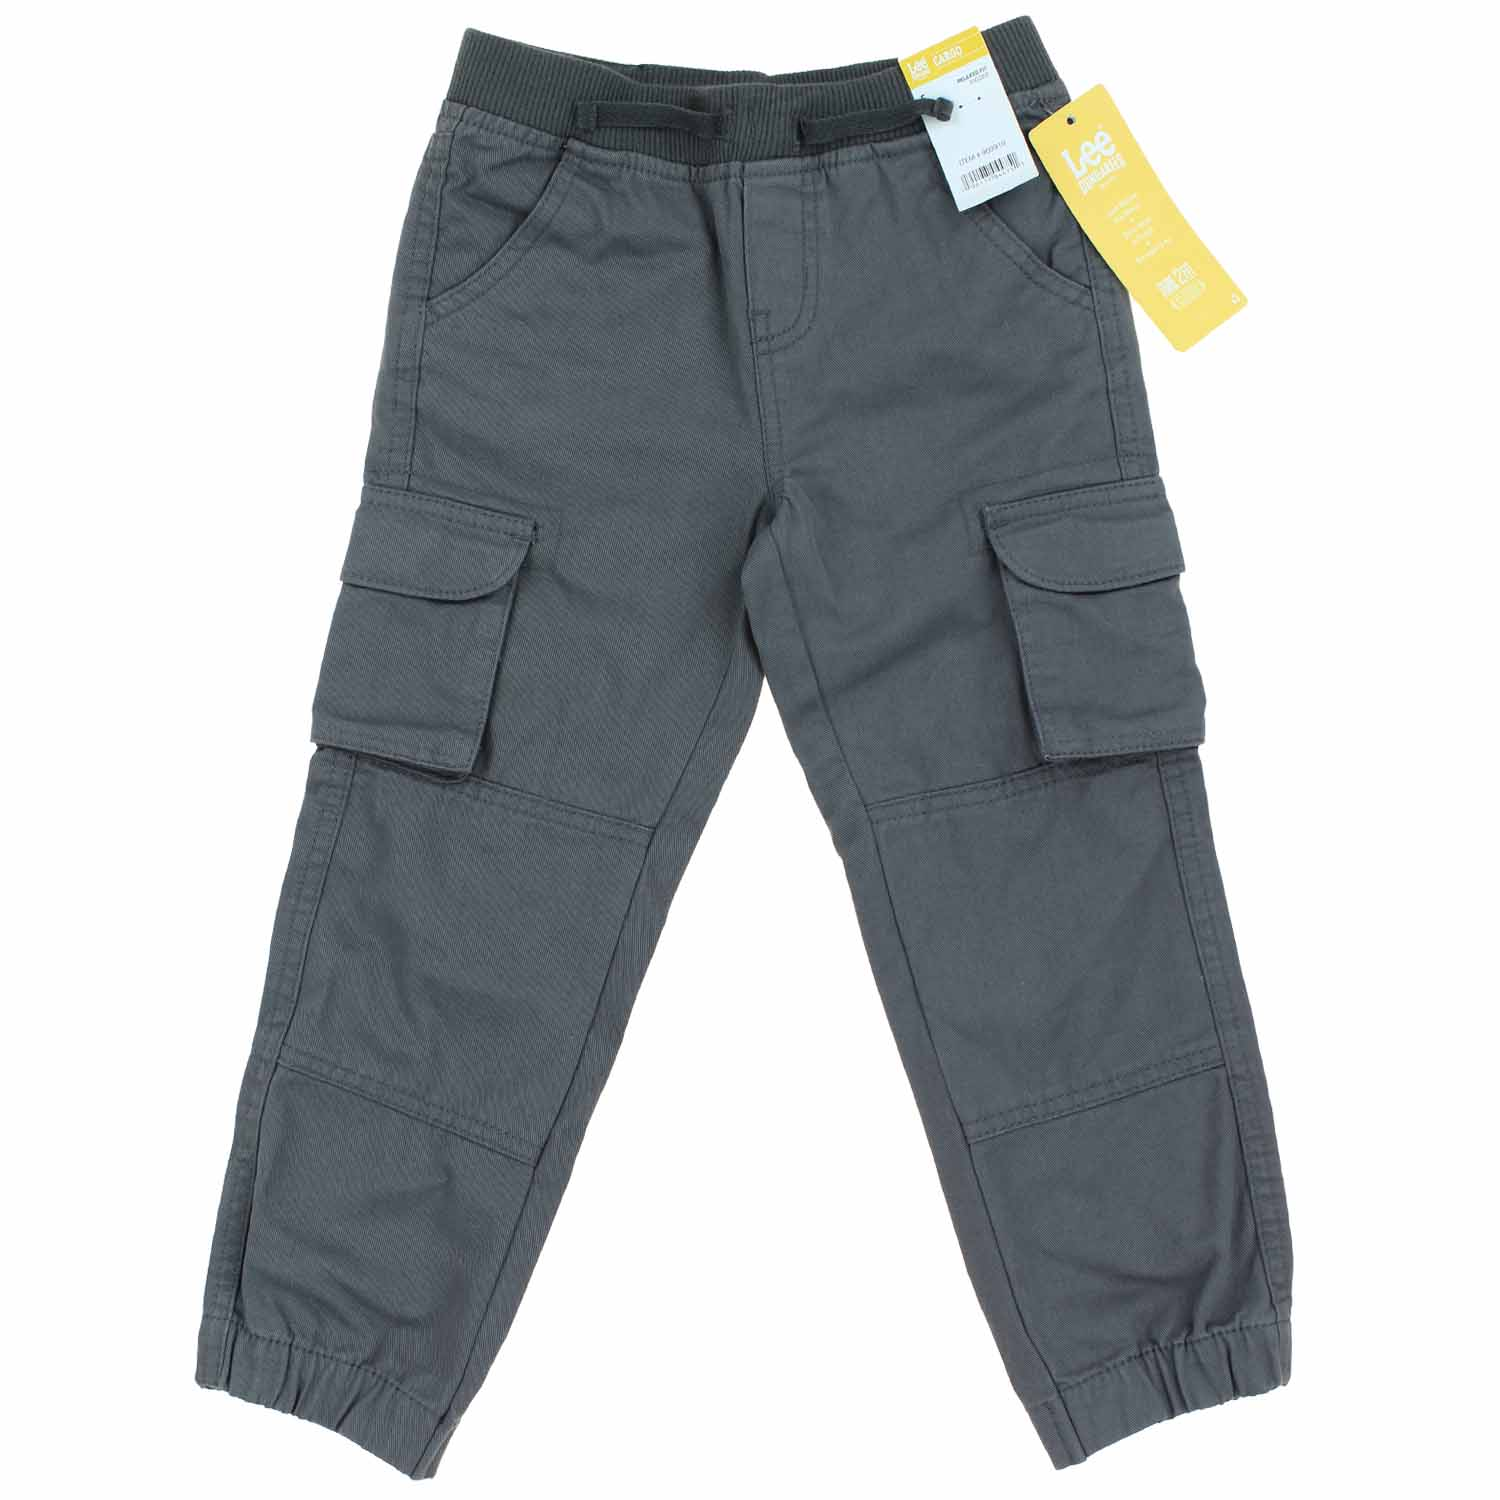 exclusive deals many choices of popular brand Details about Lee Dungarees Boys Cargo Relaxed Fit Jogger